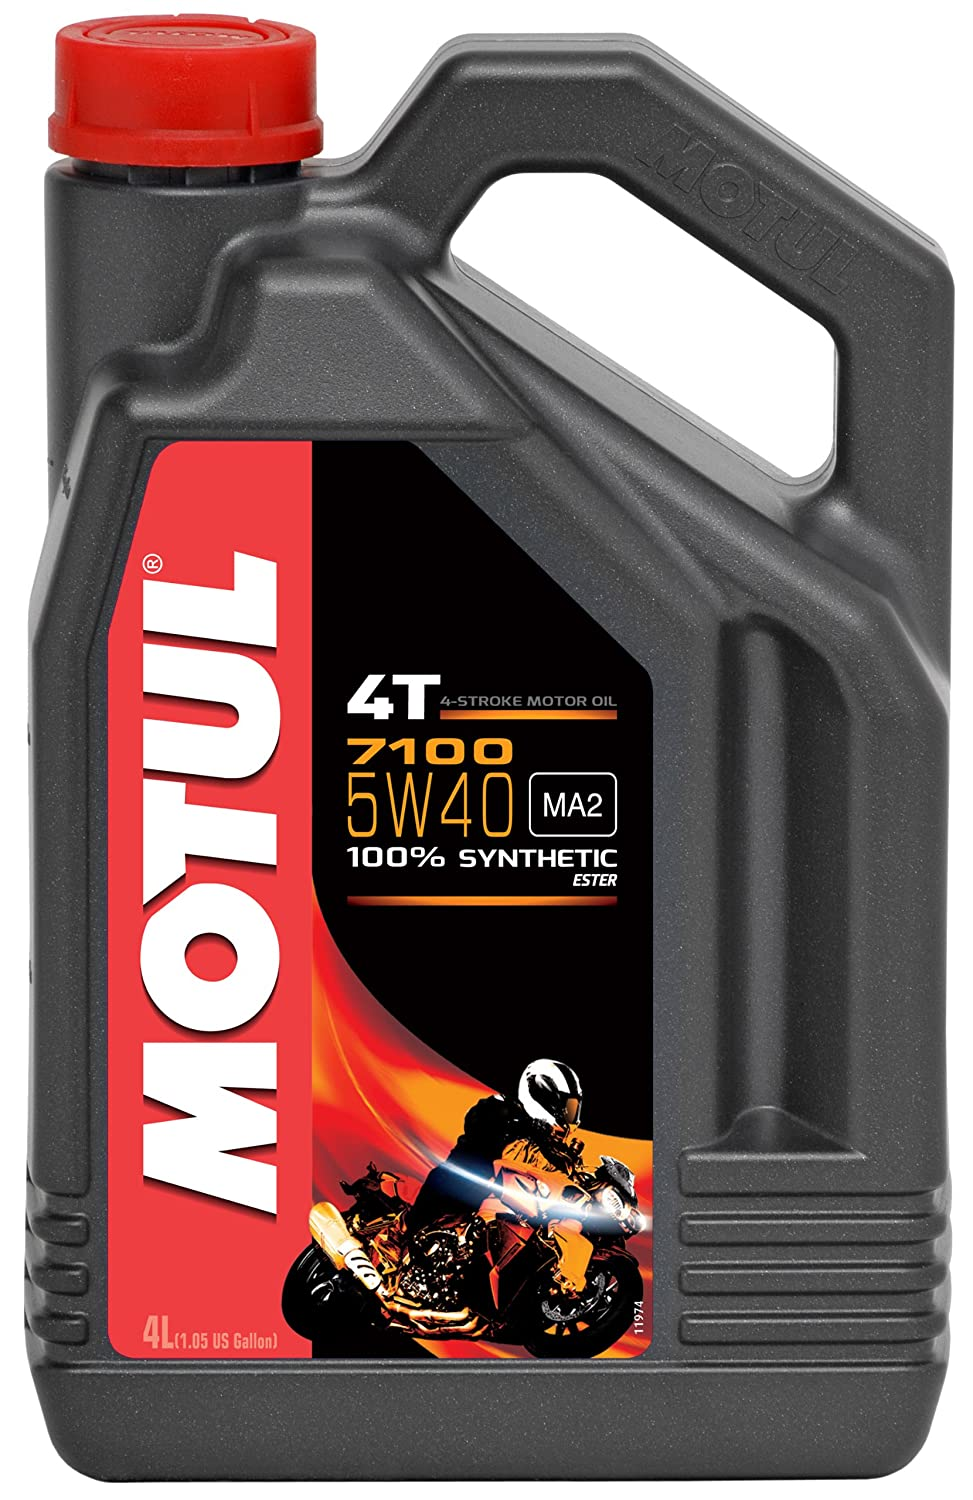 Motul 104087 7100 4T 5W-40 4L Fully synthetic Engine Oil Motul Deutschland Gmb H